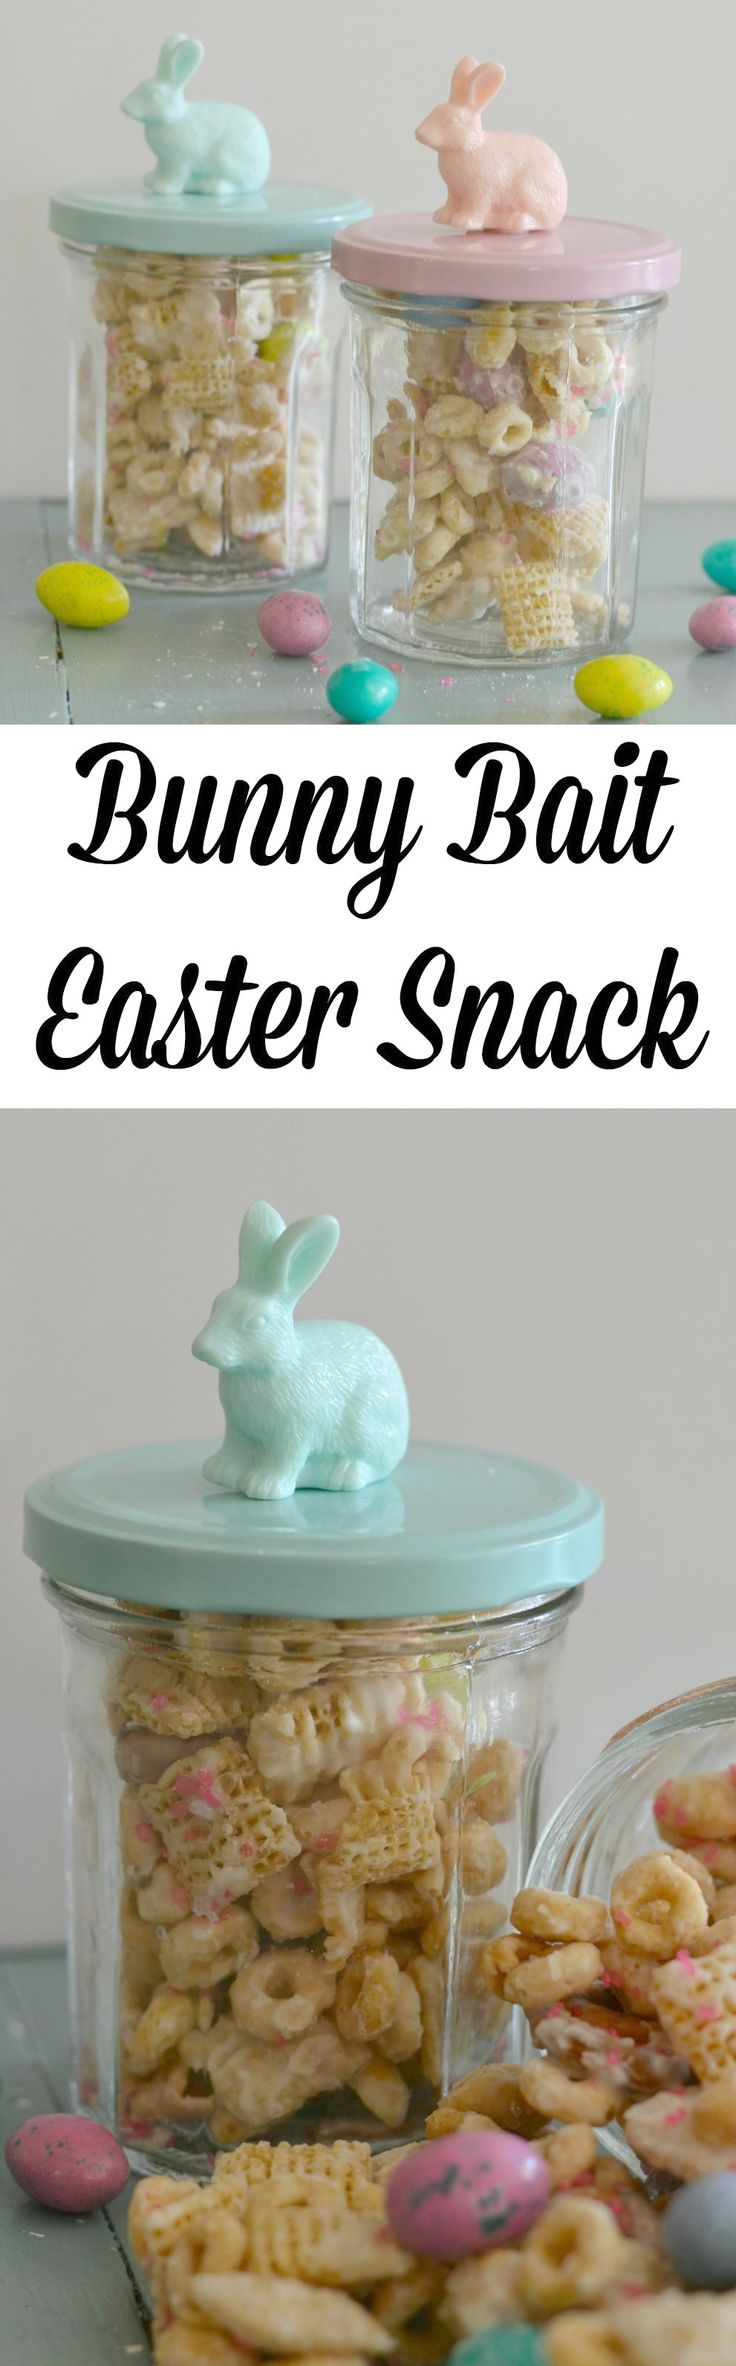 Bunny Bait Easter Snack! This is the perfect treat for teachers and neighbors. Full of M&M's, cereal, candies, pretzels and peanuts. So delicious!